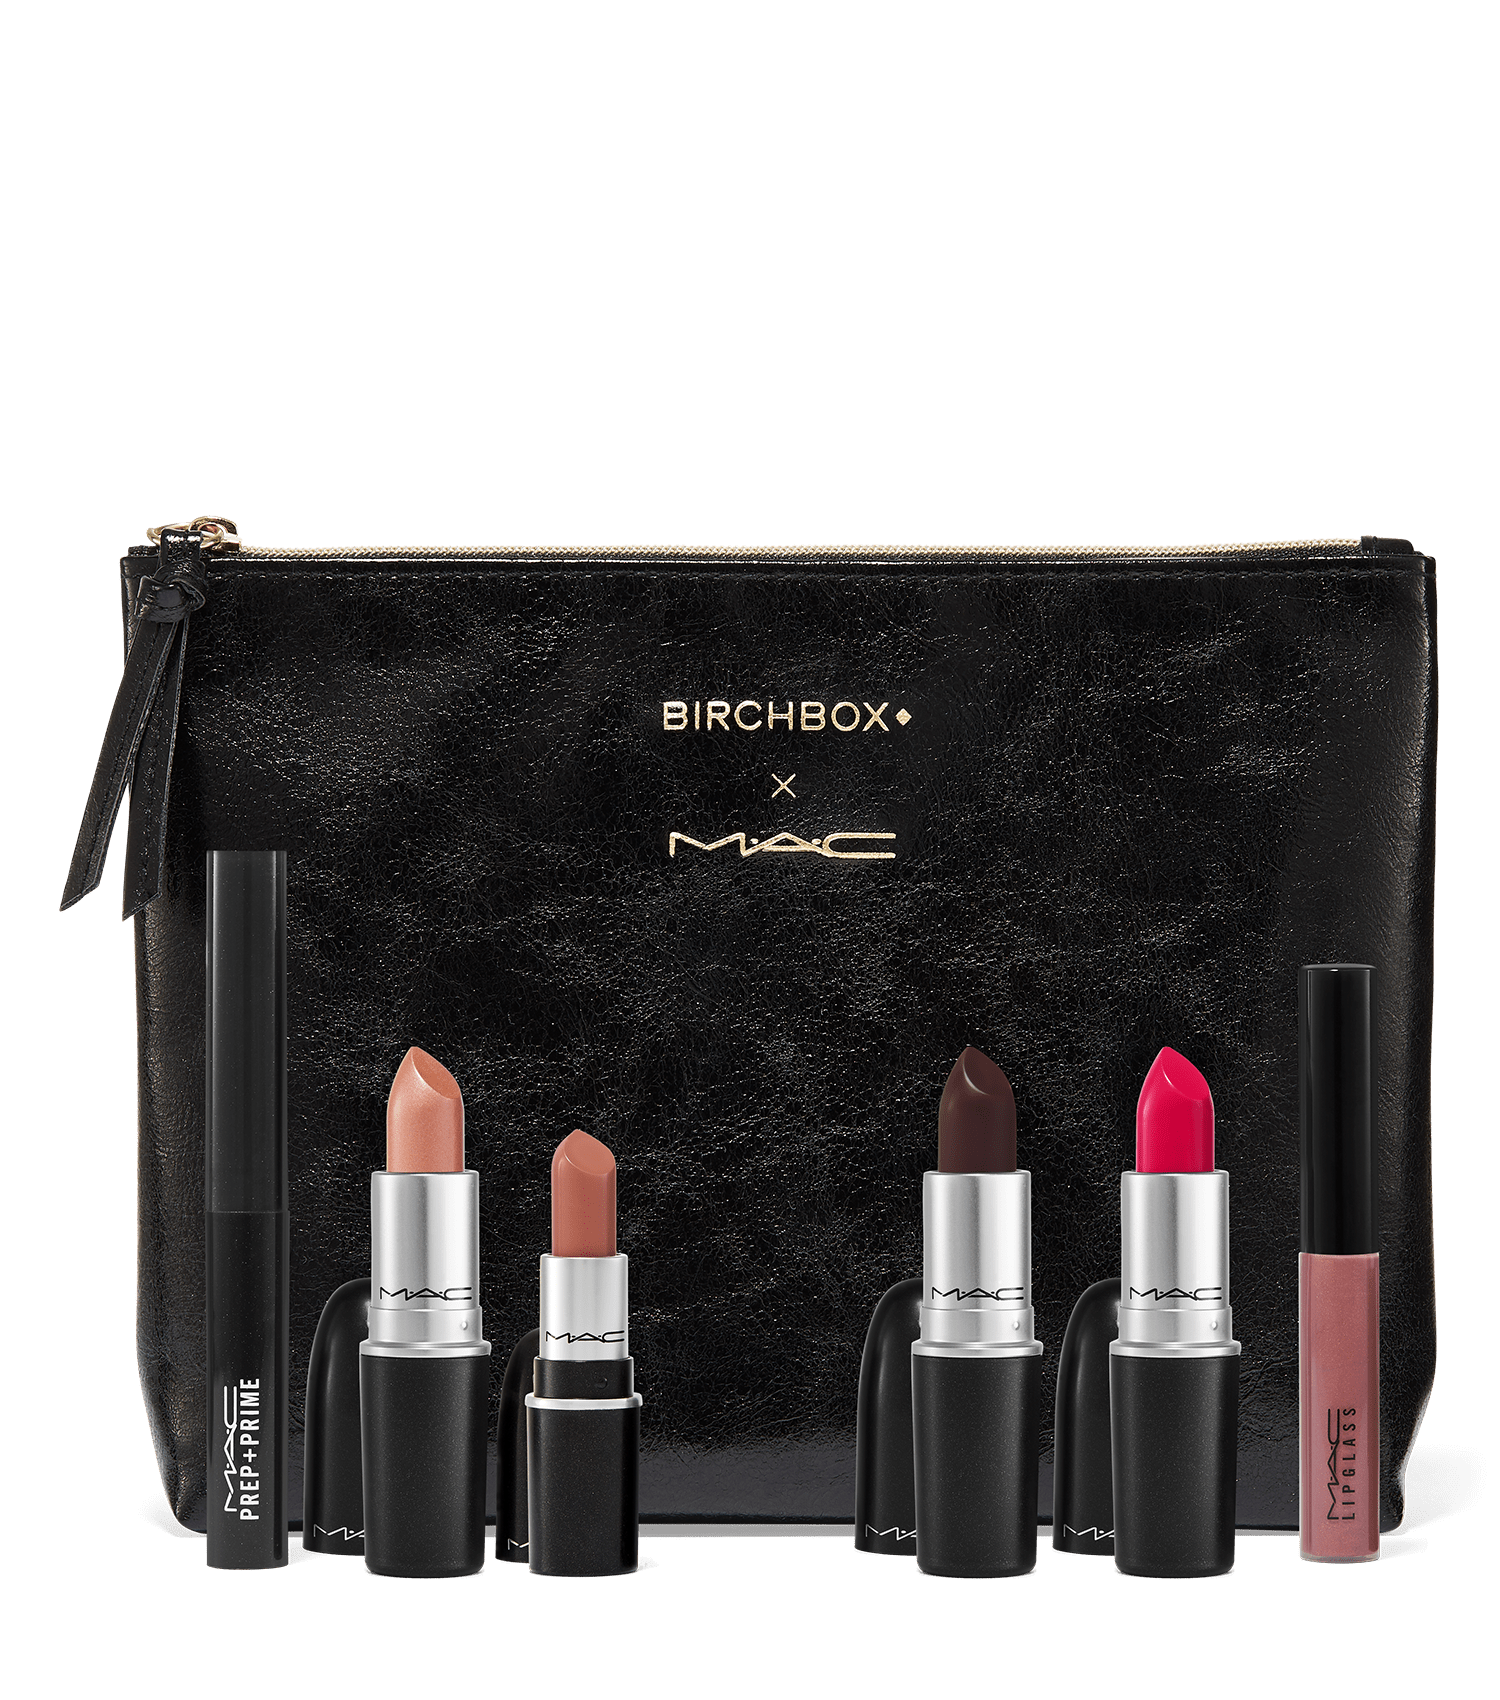 The Birchbox x M·A·C Cosmetics Lip Set – New Birchbox Kit Available Now + Coupons!